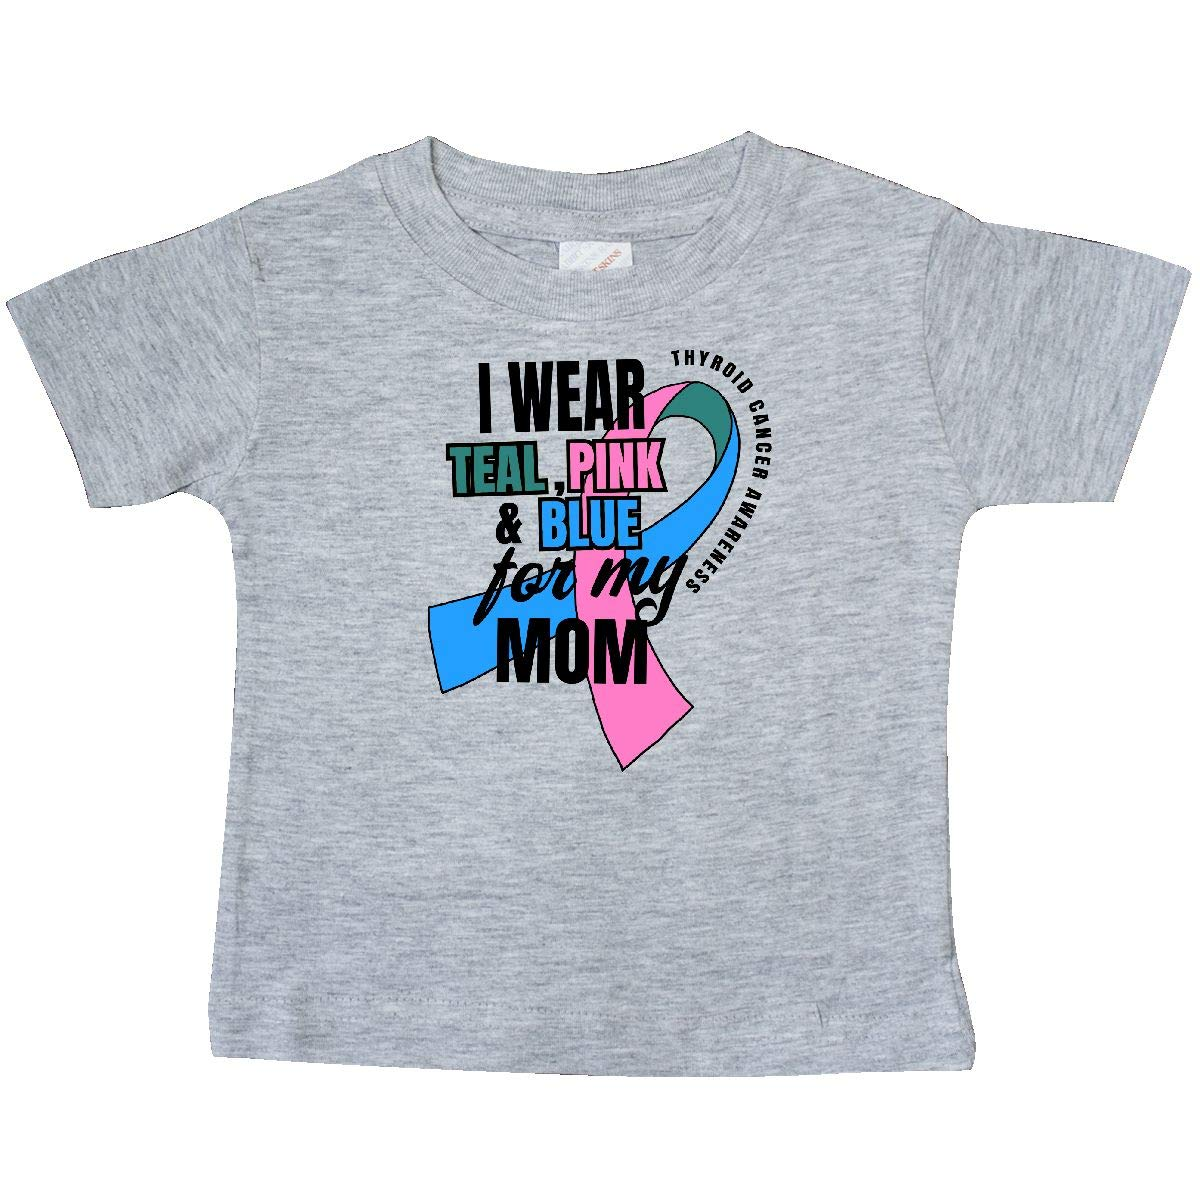 inktastic I Wear Teal Pink and Blue for My Mom Baby T-Shirt